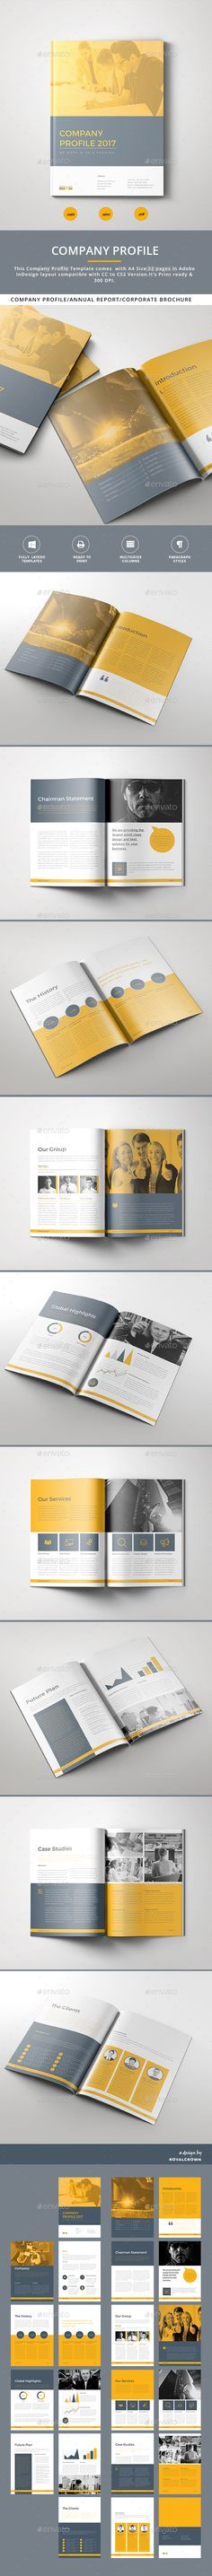 The Company Profile Design Template - Corporate Brochure Template InDesign INDD. Download here: https://graphicriver.net/item/the-company-profile/17037014?s_rank=45&ref=yinkira